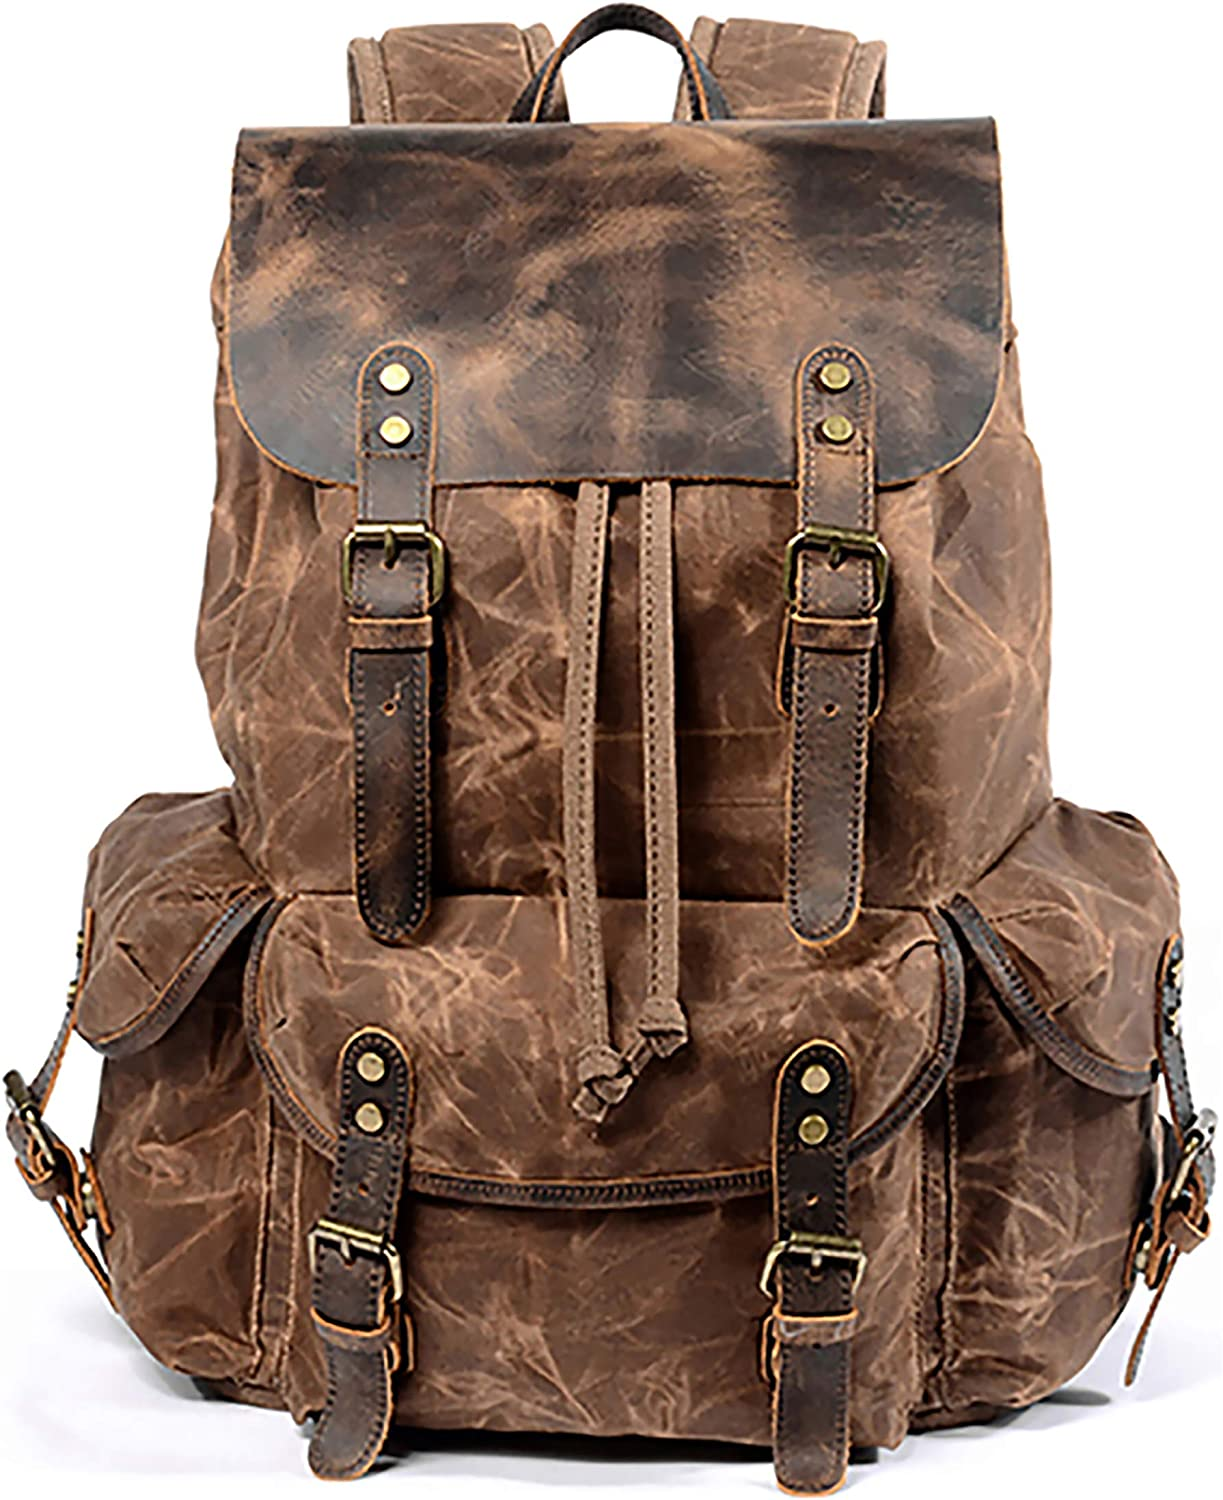 Dubhe Tan Backpack Crossbody leather bag Leather Backpack